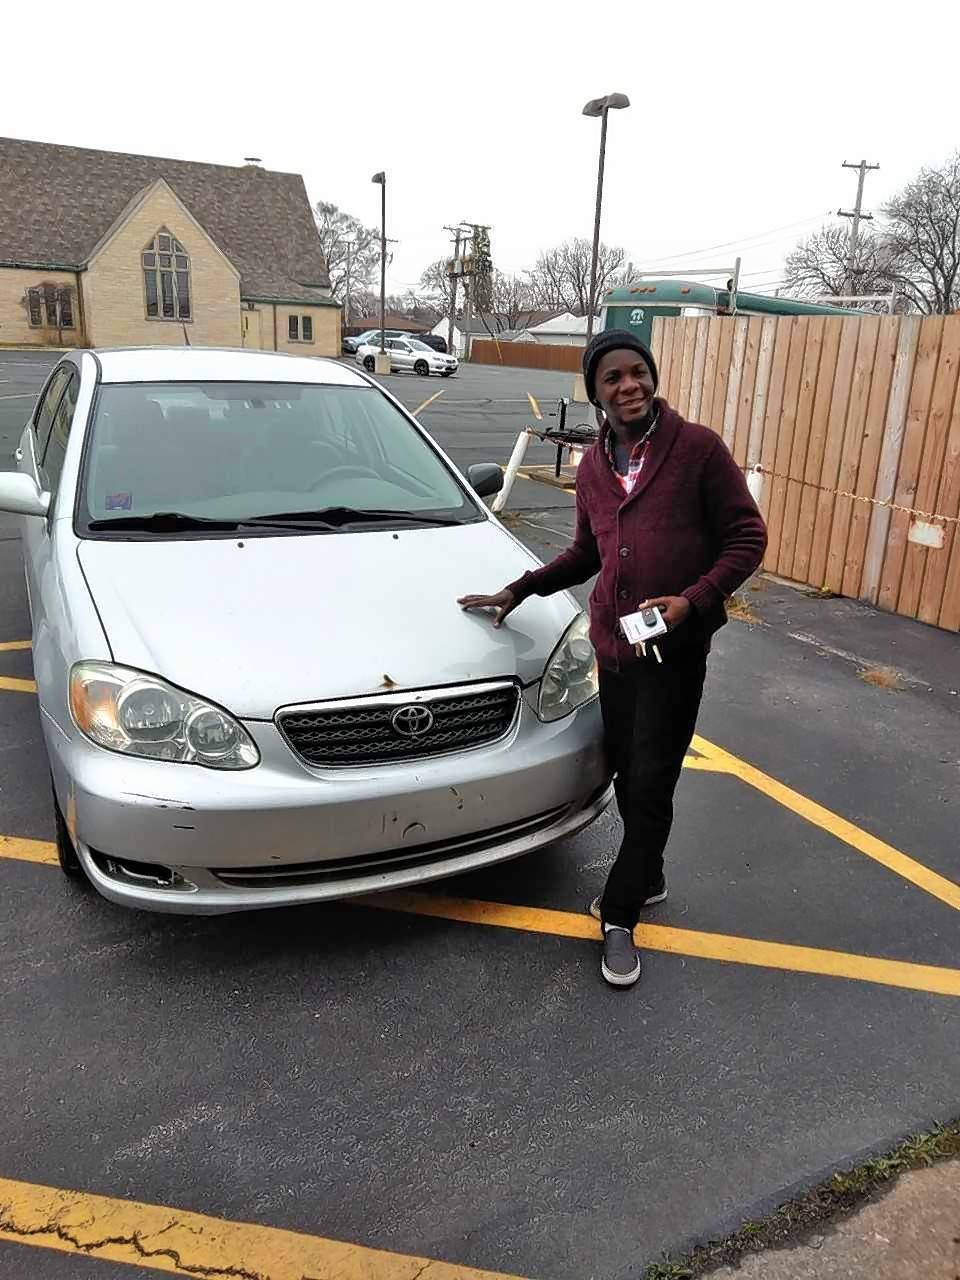 """Pastor Fred Paul was going back to Haiti to help with reconstruction but needed transportation to get around and to deliver supplies,"" Frank Hauser said. ""We found him a car with seats that fold down flat, allowing him to fill the trunk and car front to back."""